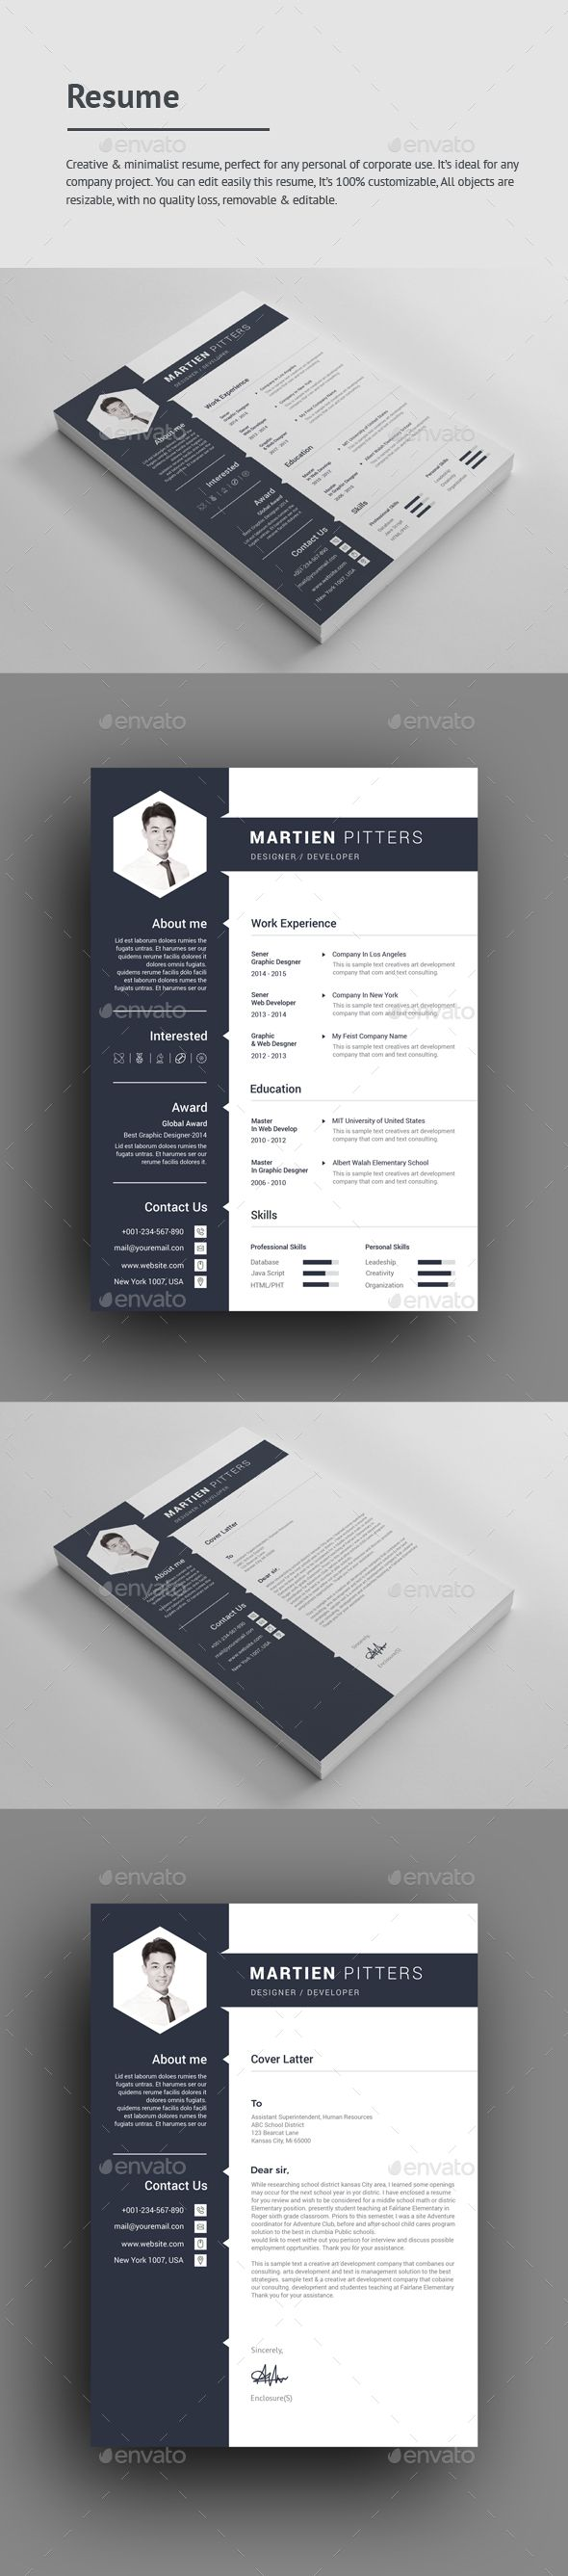 Resume File Information A4 Size print dimension with bleed + guidelines, well layered organised (PSD). Adobe CS3,CS4,CS5,CS6,CC+ versions of files oppen, CMYK , Print ready & fully editable, text/fonts/colors editable. Feature      Scalable     Easy To Customize     Easy To Change Colors     All Text Editable With Text Tool     A4 Size     Images not include